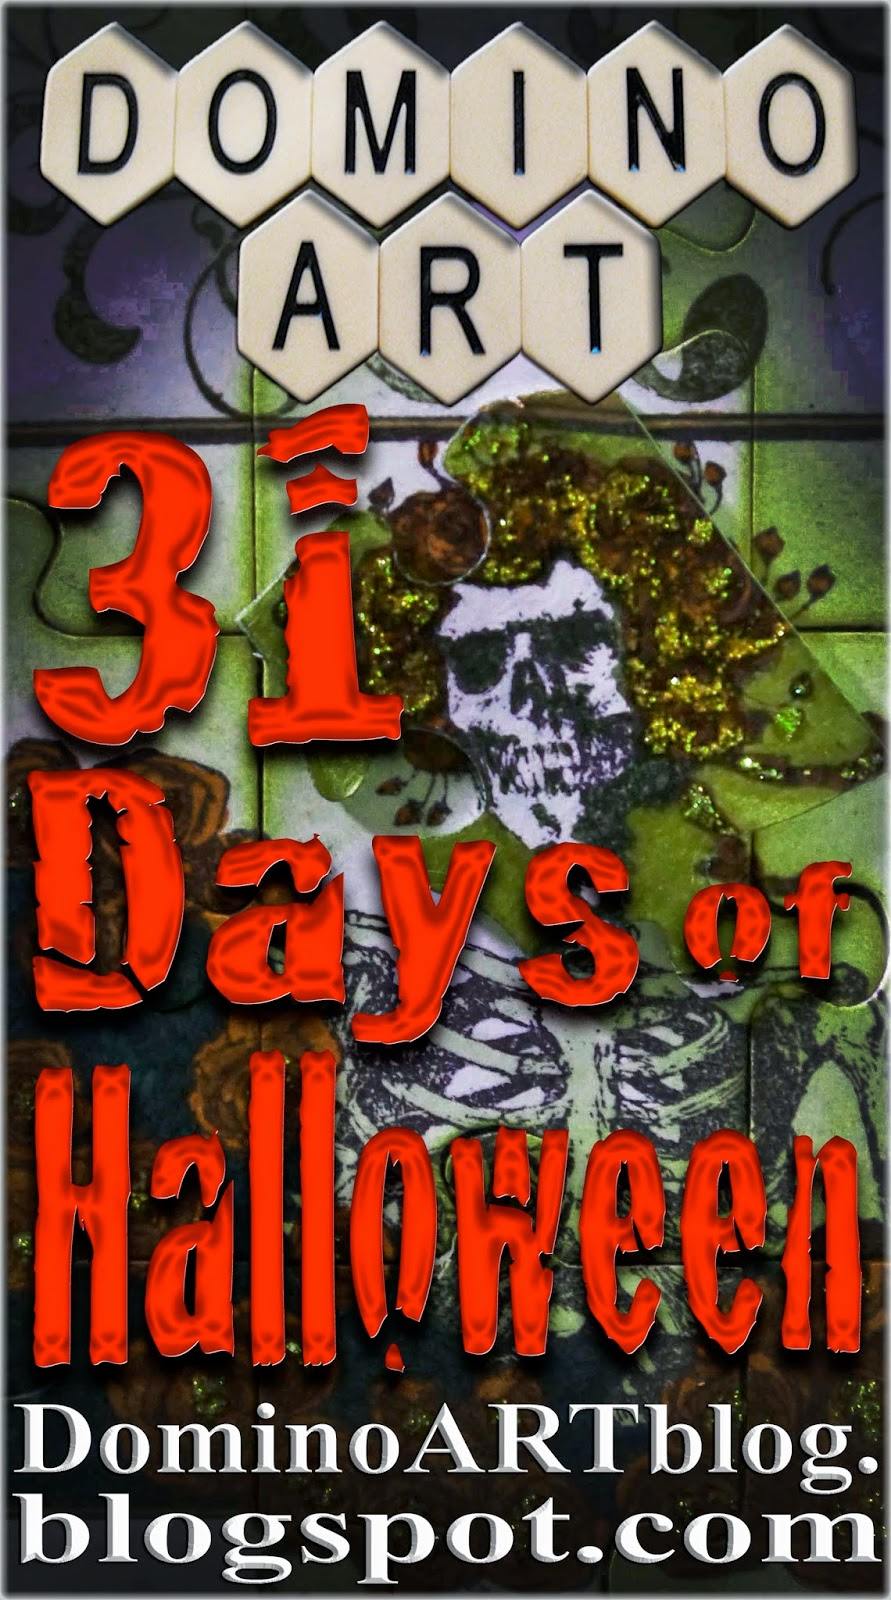 Voting Starts Oct 29 for DominoART's 31 Days of Halloween!